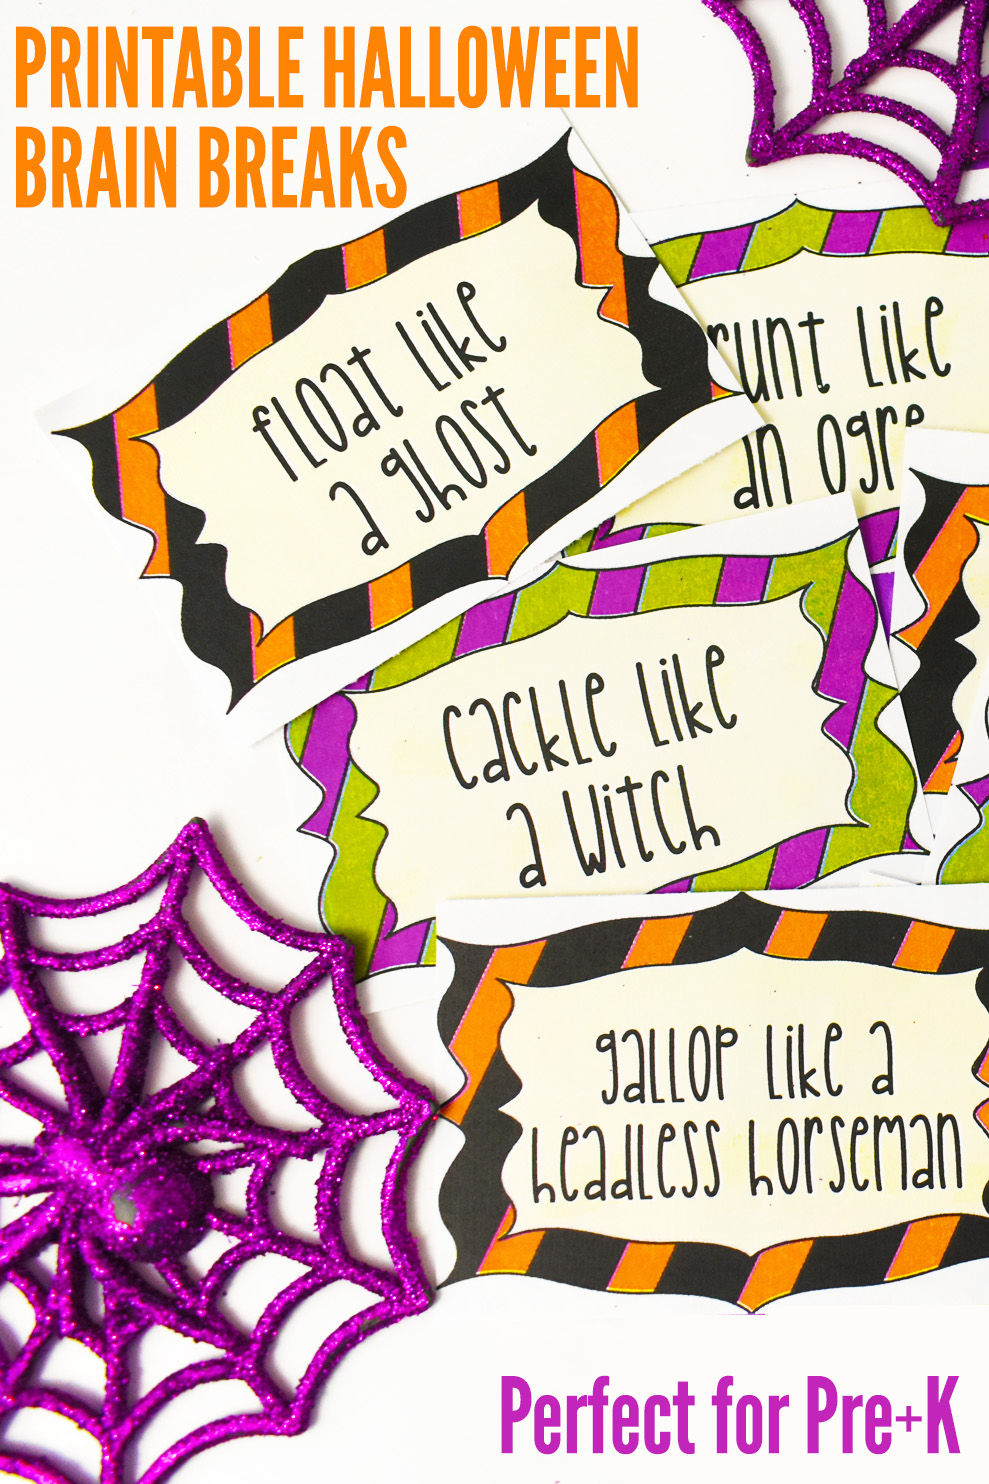 Printable Halloween Brain Breaks